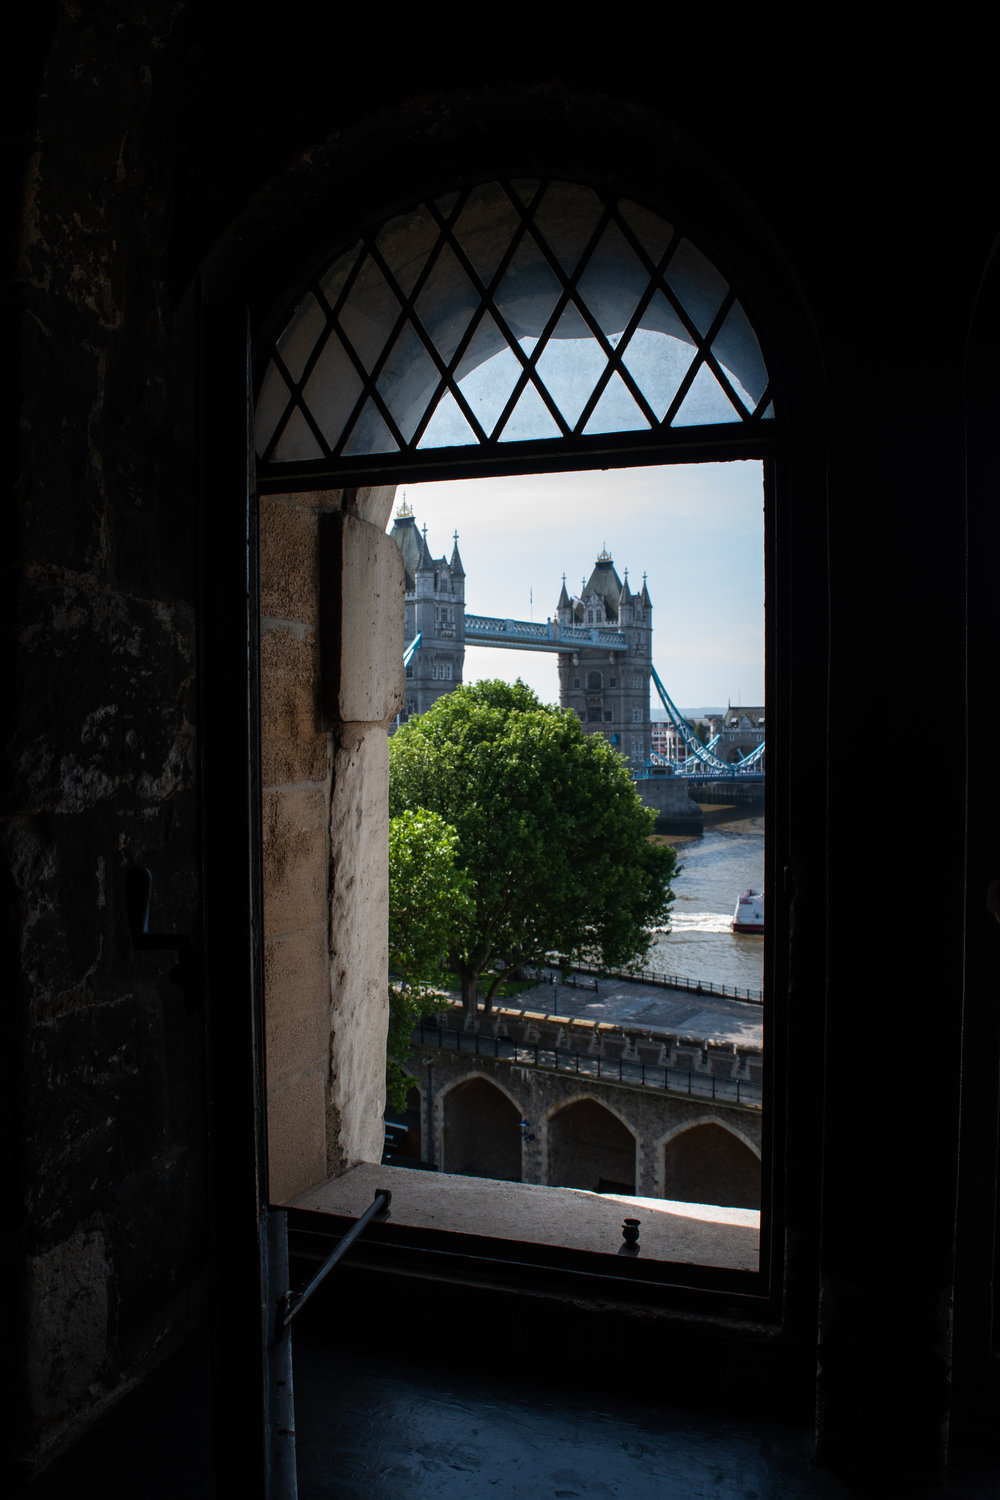 tower of london 5 jpg.jpg